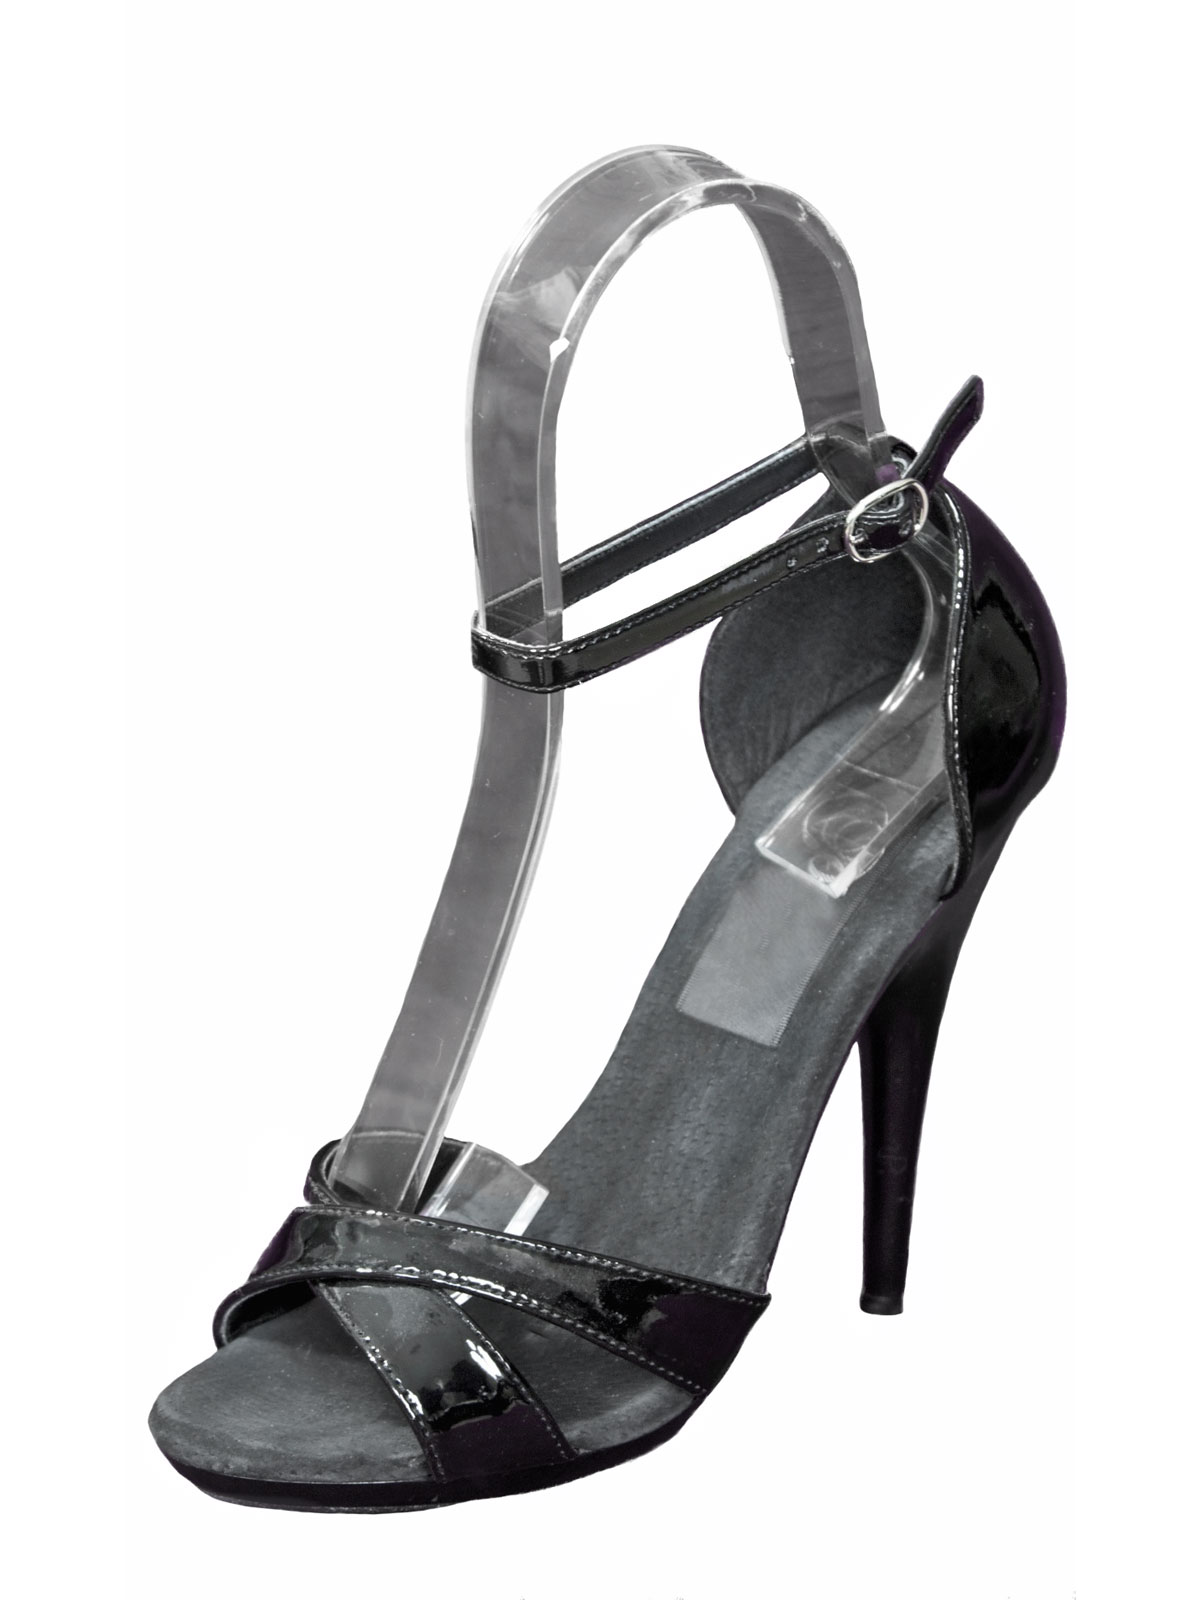 Pleaser Black Patent High Heel Sandals Tout Ensemble